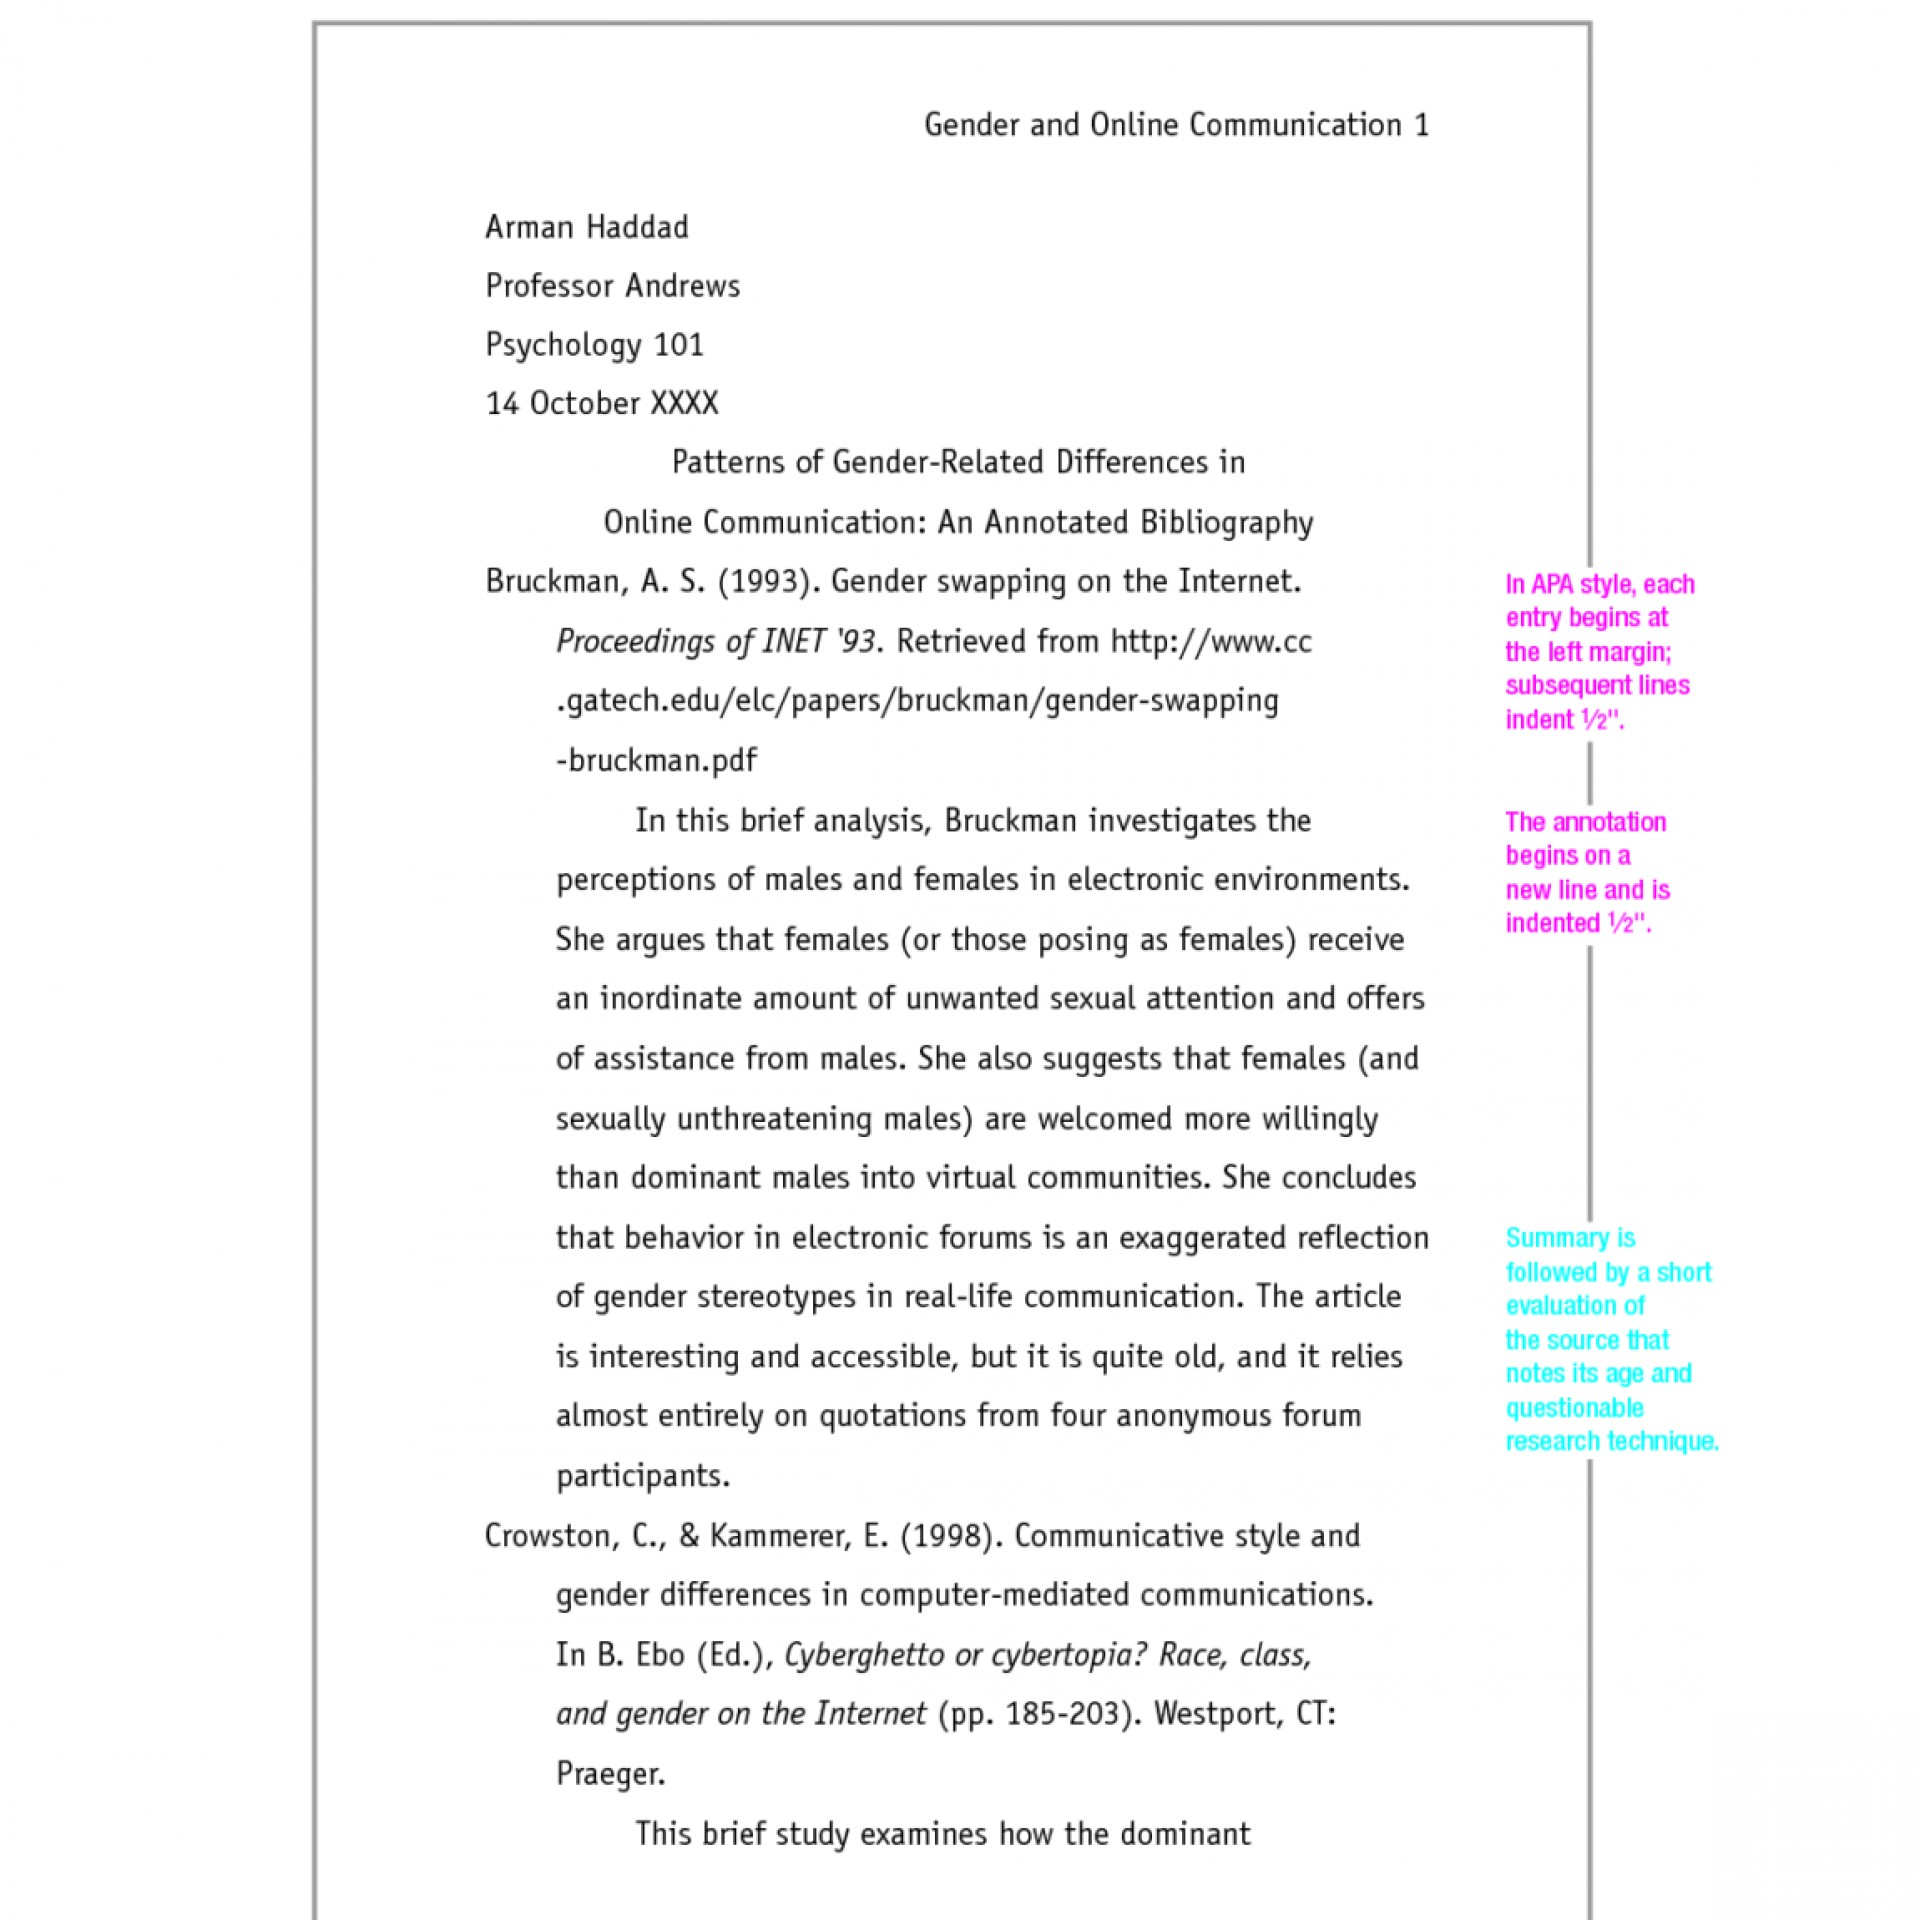 004 Apa Formatting Rules For Your Paper Within Essay Format Good Short Example Style Term Header Outline Sell And Stupendous Template Papers Examples Word 2010 1920